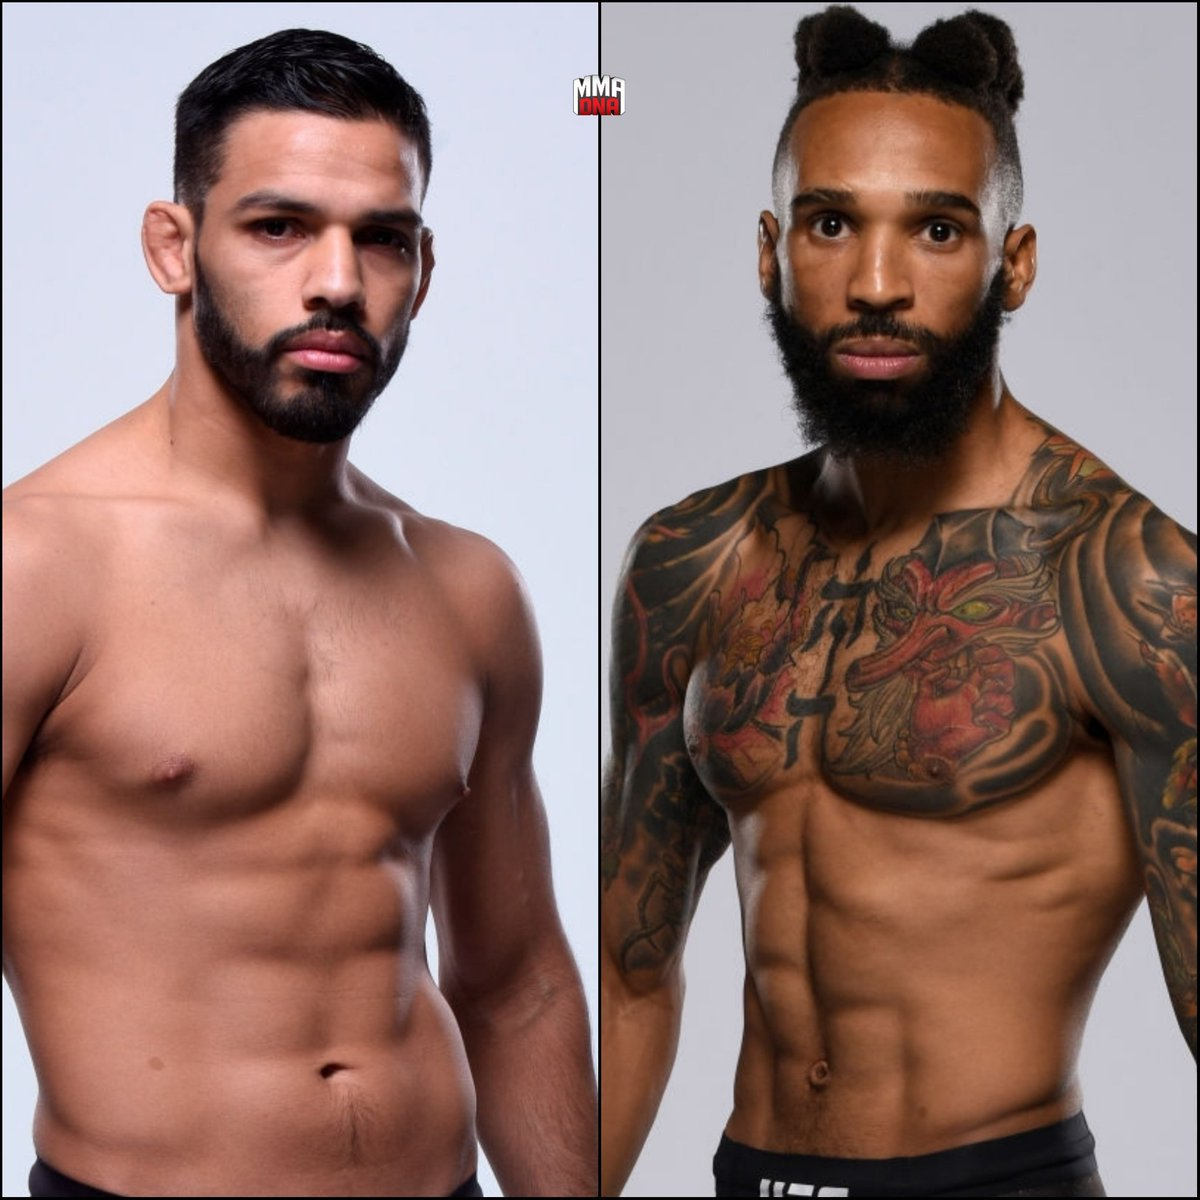 Julio Arce will fight Andre Ewell at UFC event on July 24th. (first rep. @MMAFighting) #UFC #MMA #UFCESPN https://t.co/5d1eAApxzq